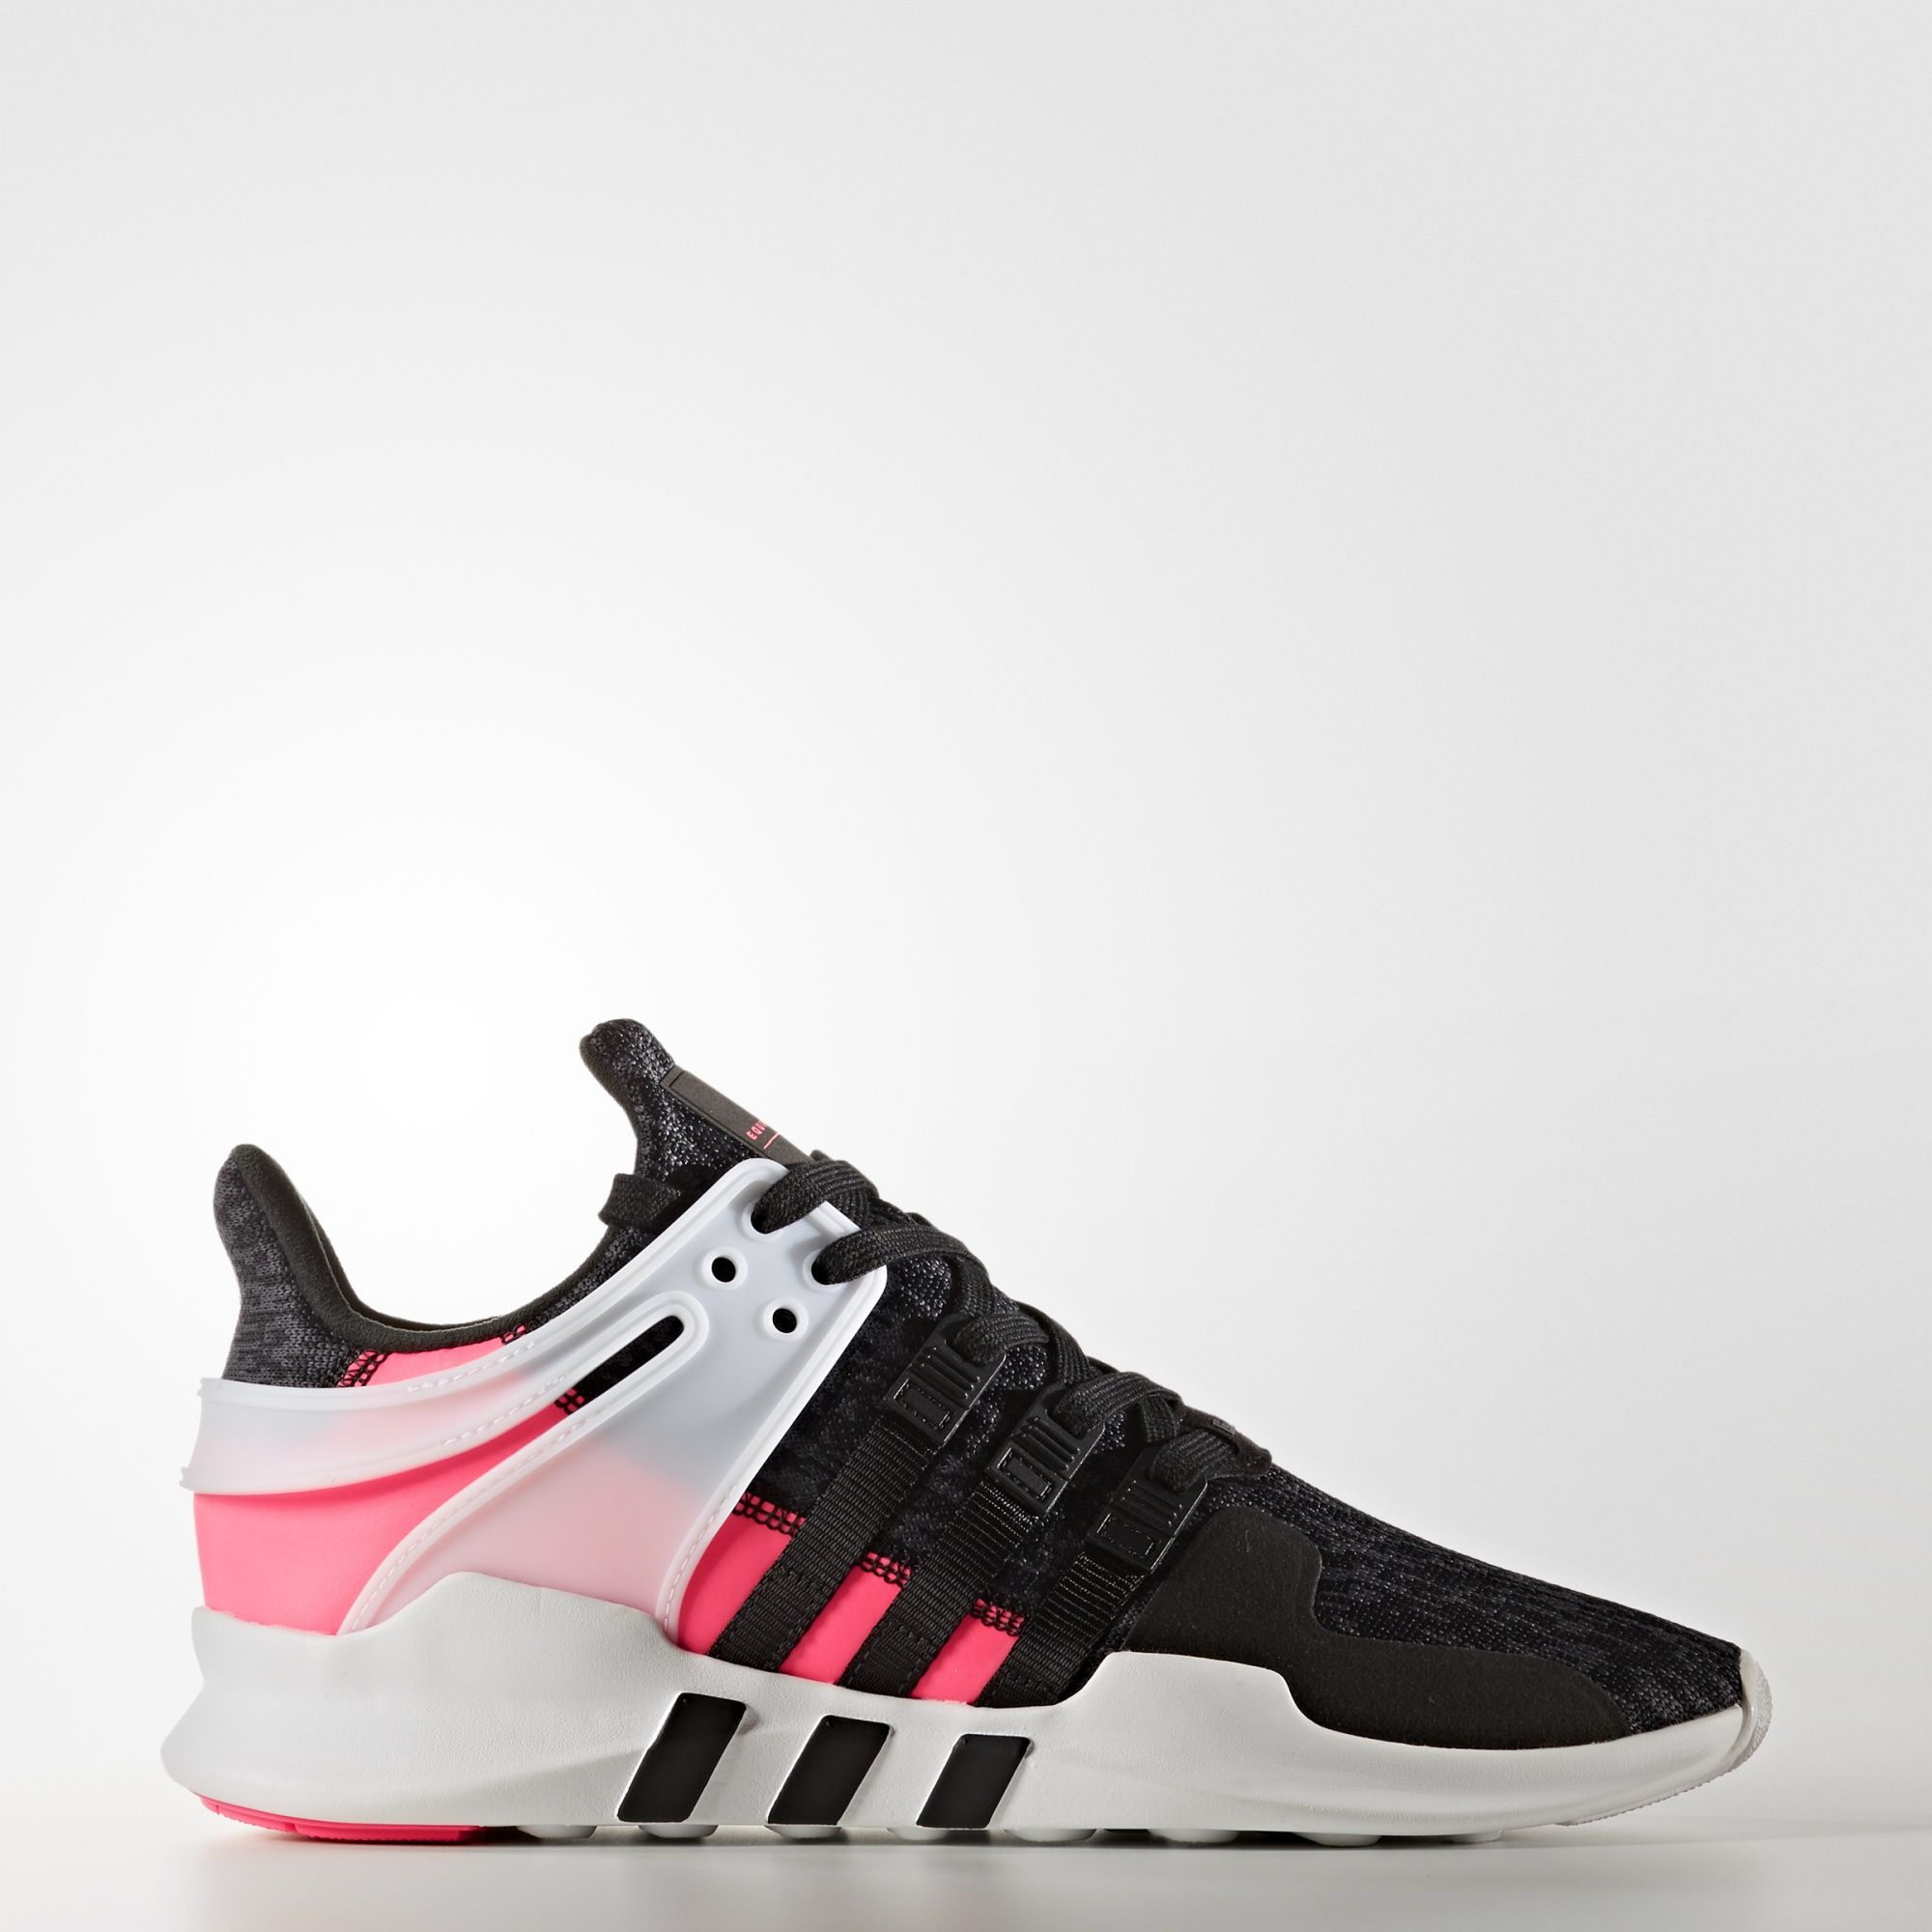 2000x2000 The Nicest New Eqt Silhouette Isn'T Primeknit Major